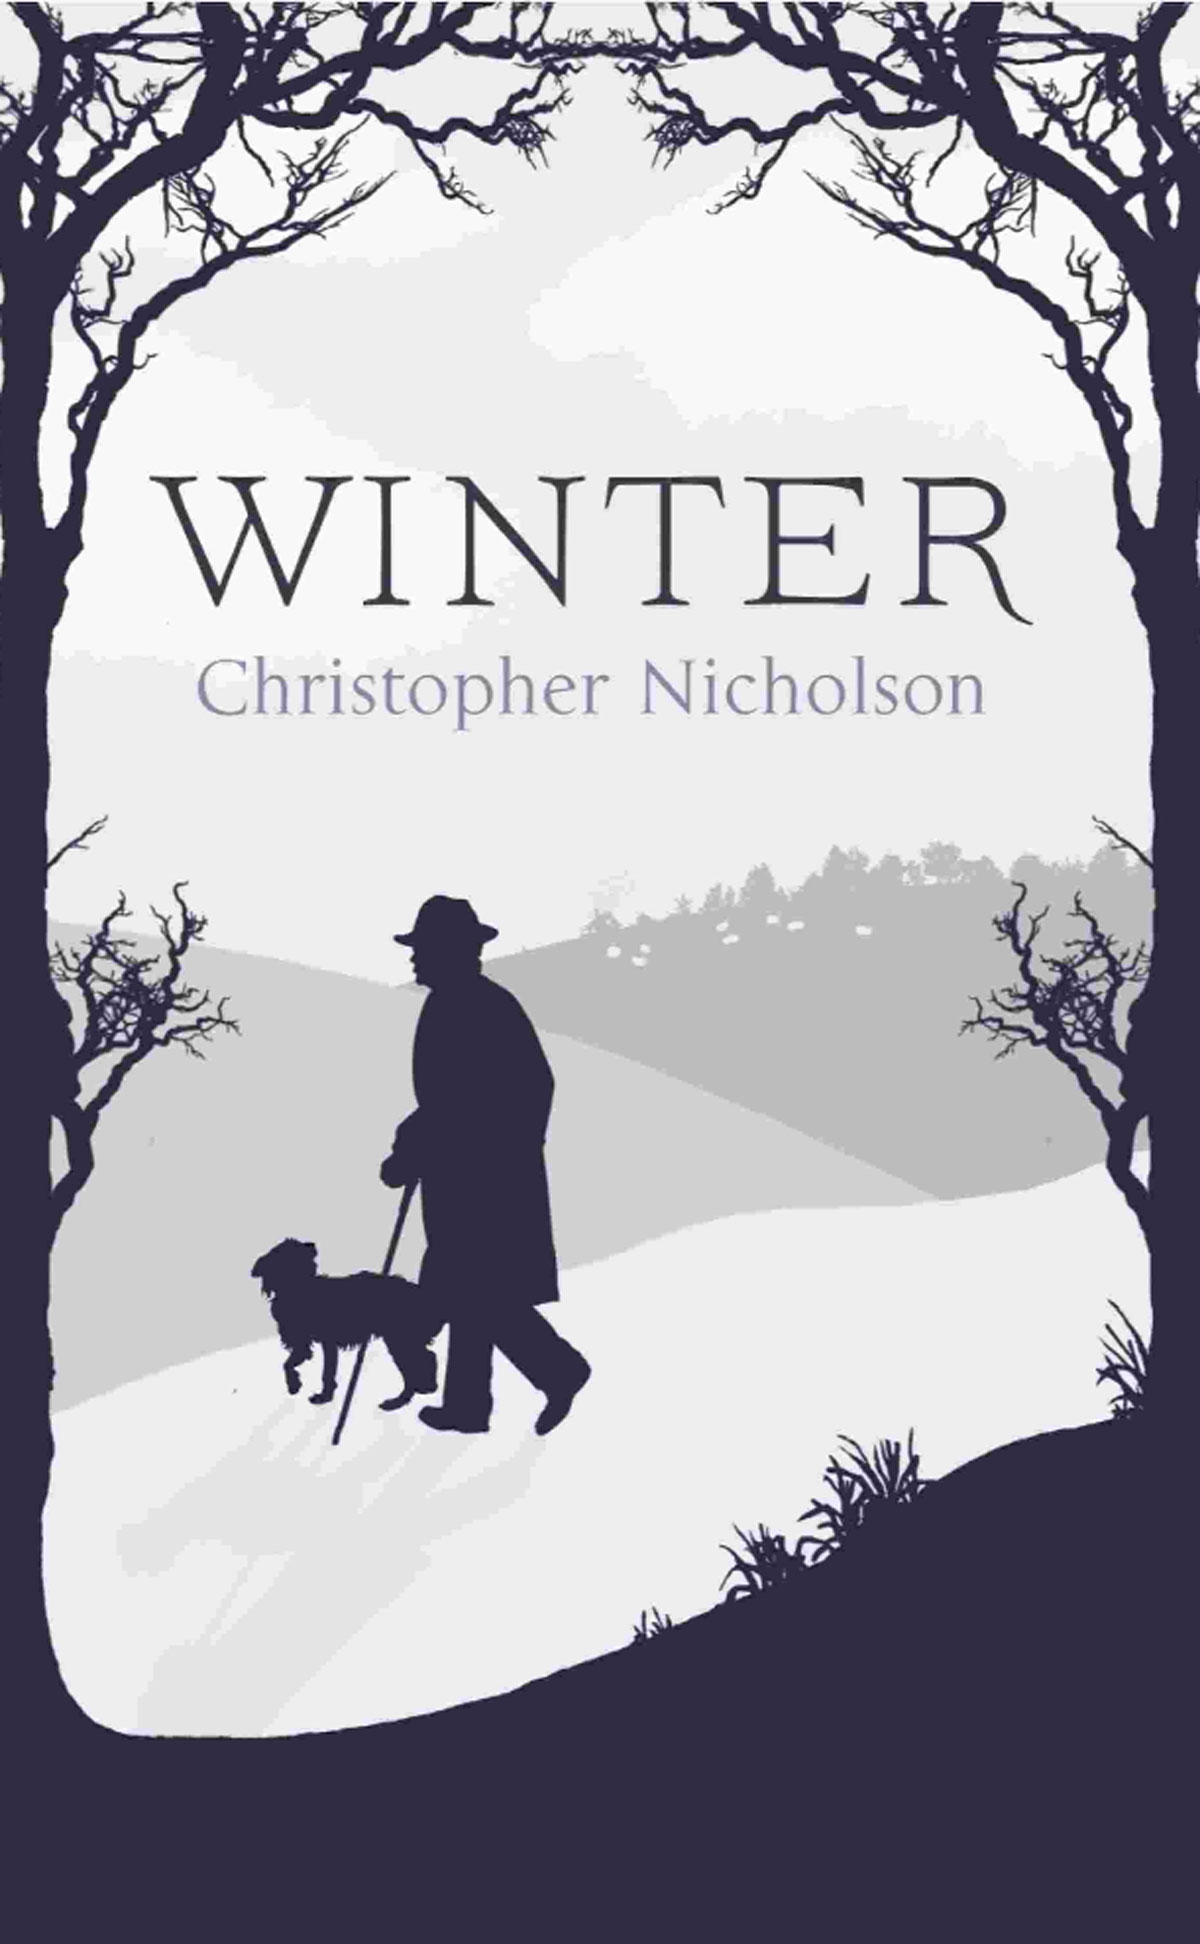 Bookseller's Choice of the Week - Winter by Christopher Nicholson